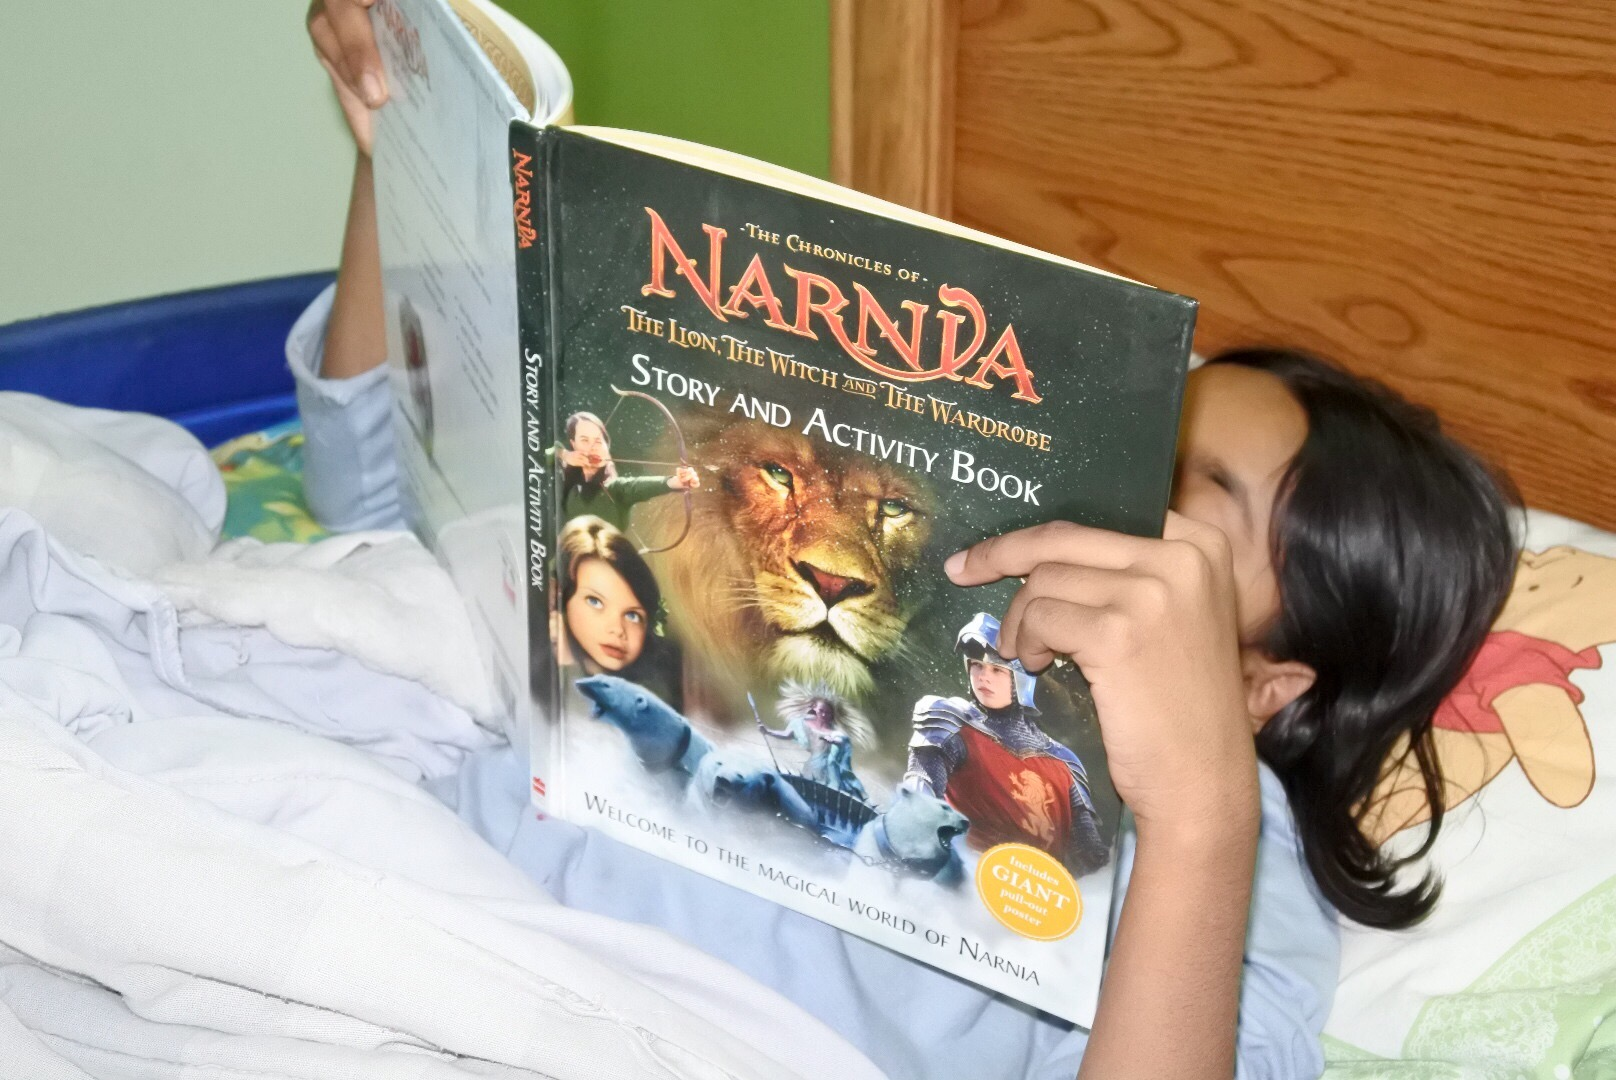 Enjoying her introduction to the world of Narnia